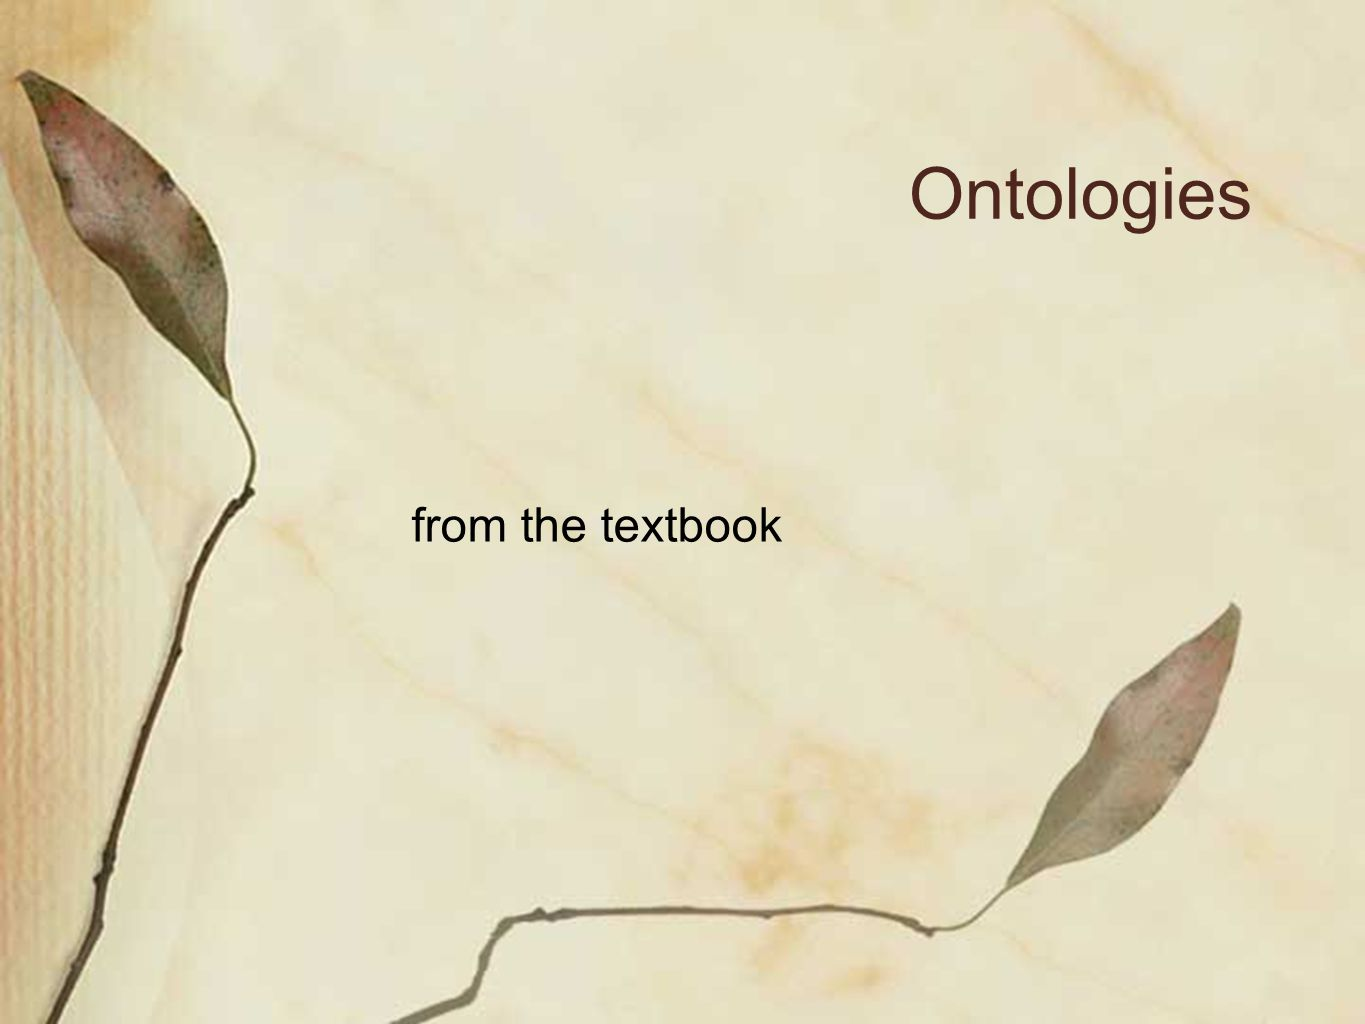 Ontologies from the textbook